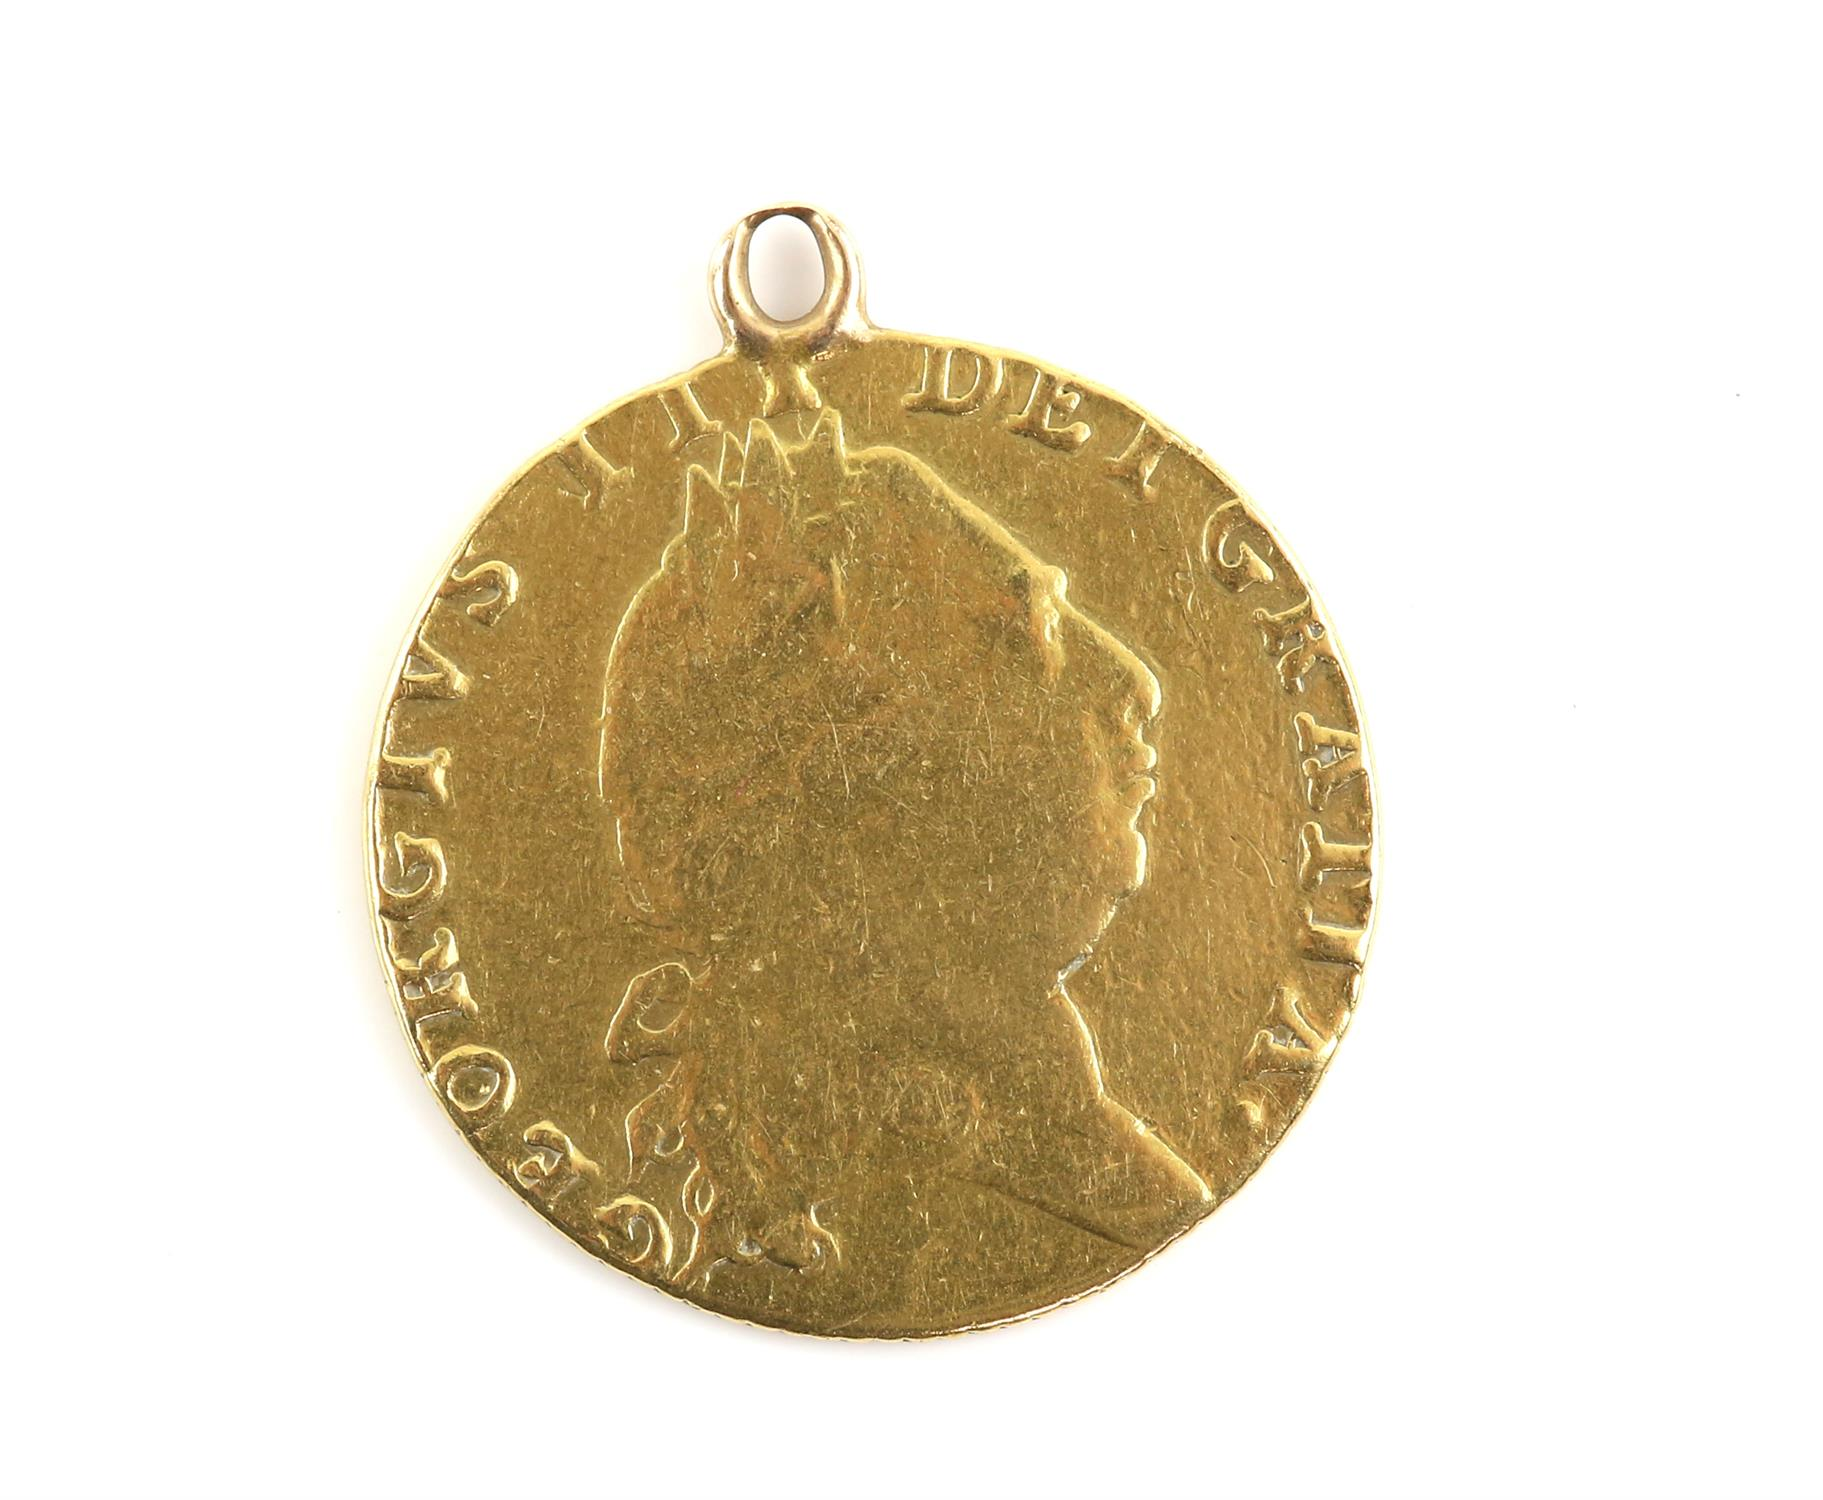 Gold coin pendant, a George III, 1793 Guinea gold coin, featuring the 5th laureate head George III - Image 2 of 2